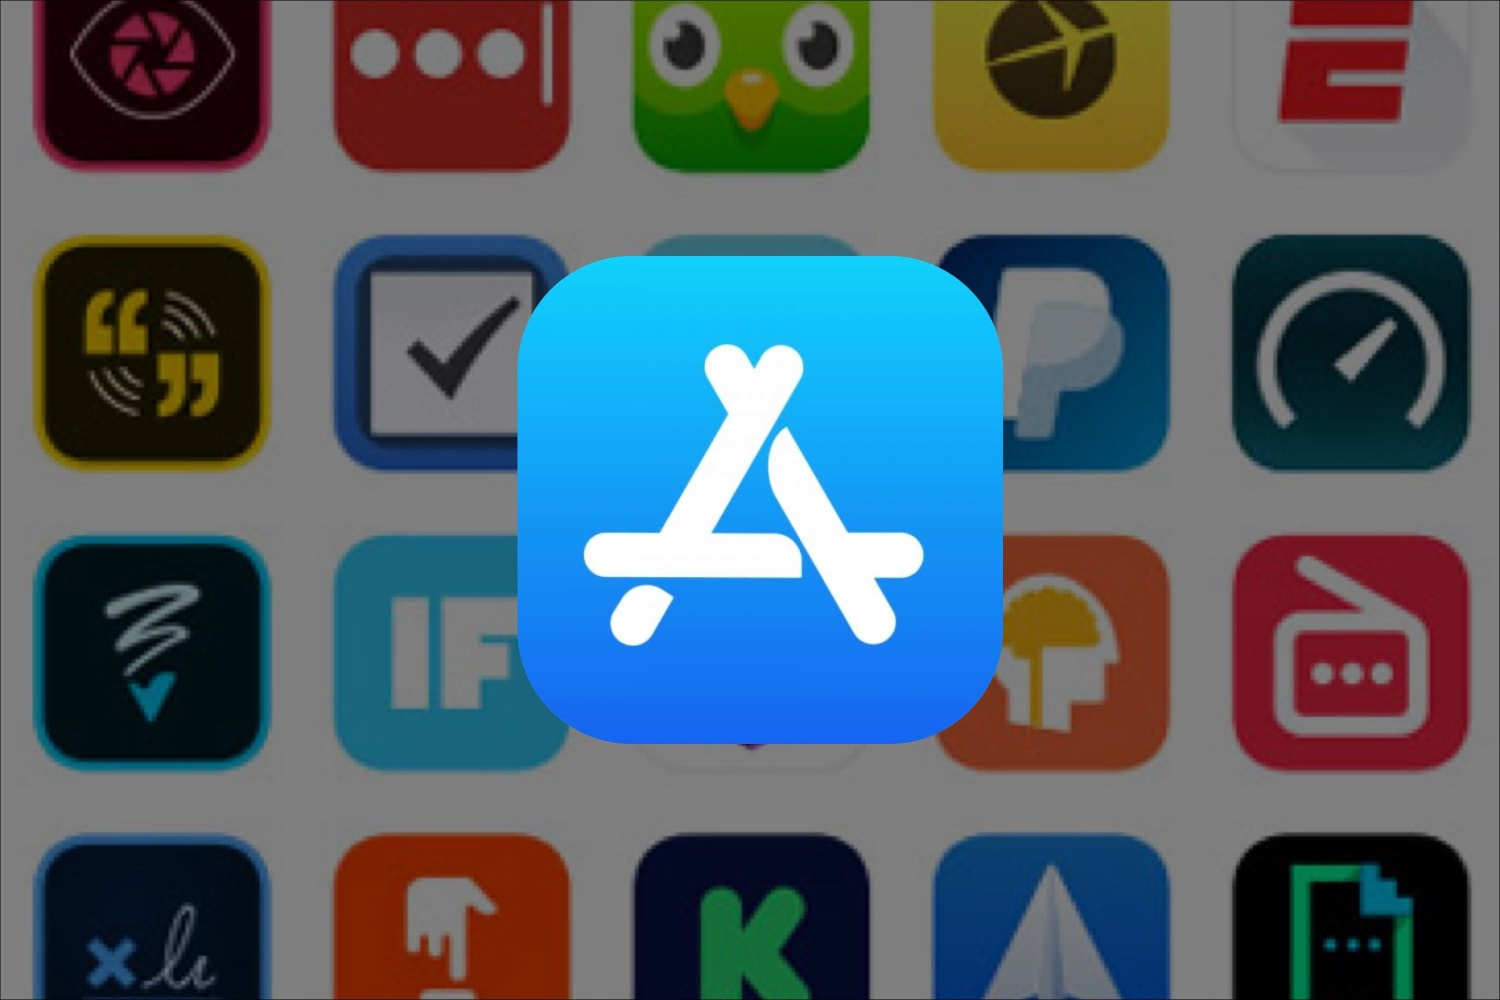 apple-to-launch-app-store-small-business-program-in-january-2021-20201118-1